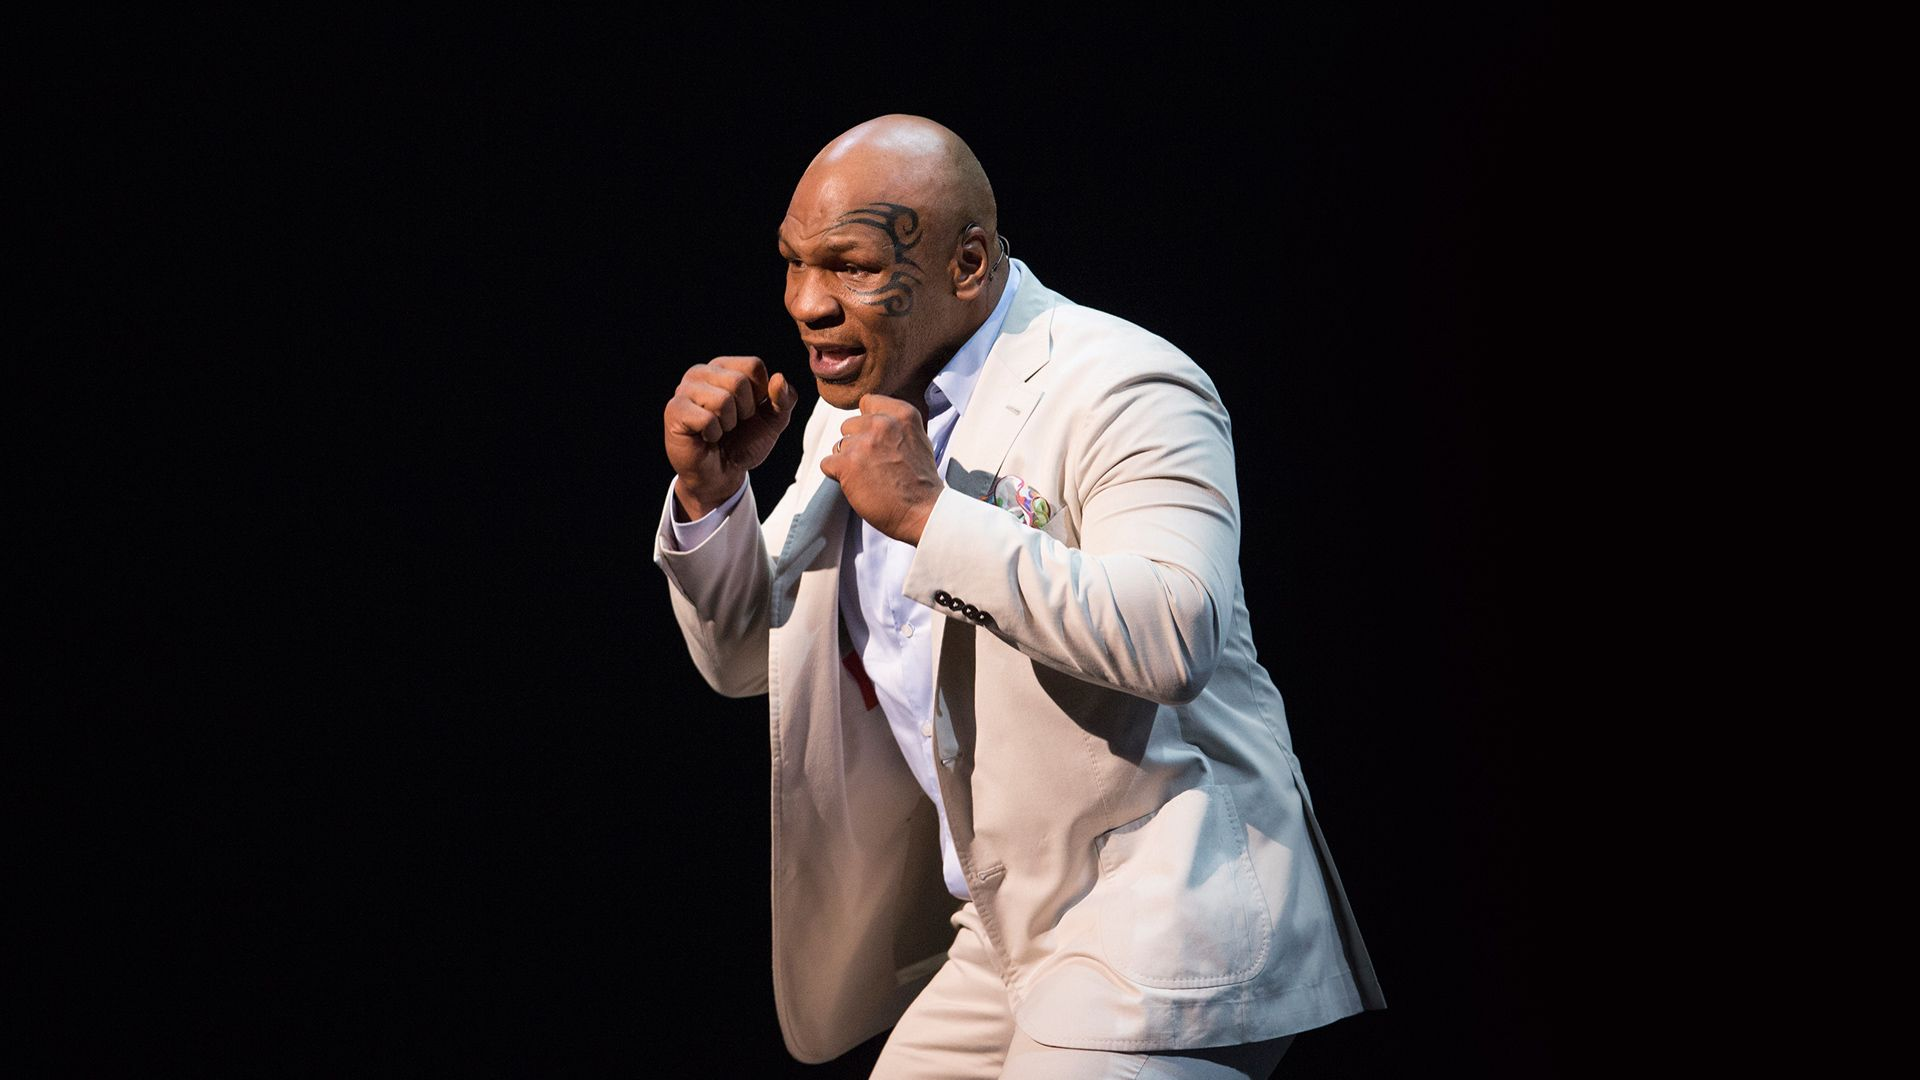 Mike Tyson Free Wallpaper and Background